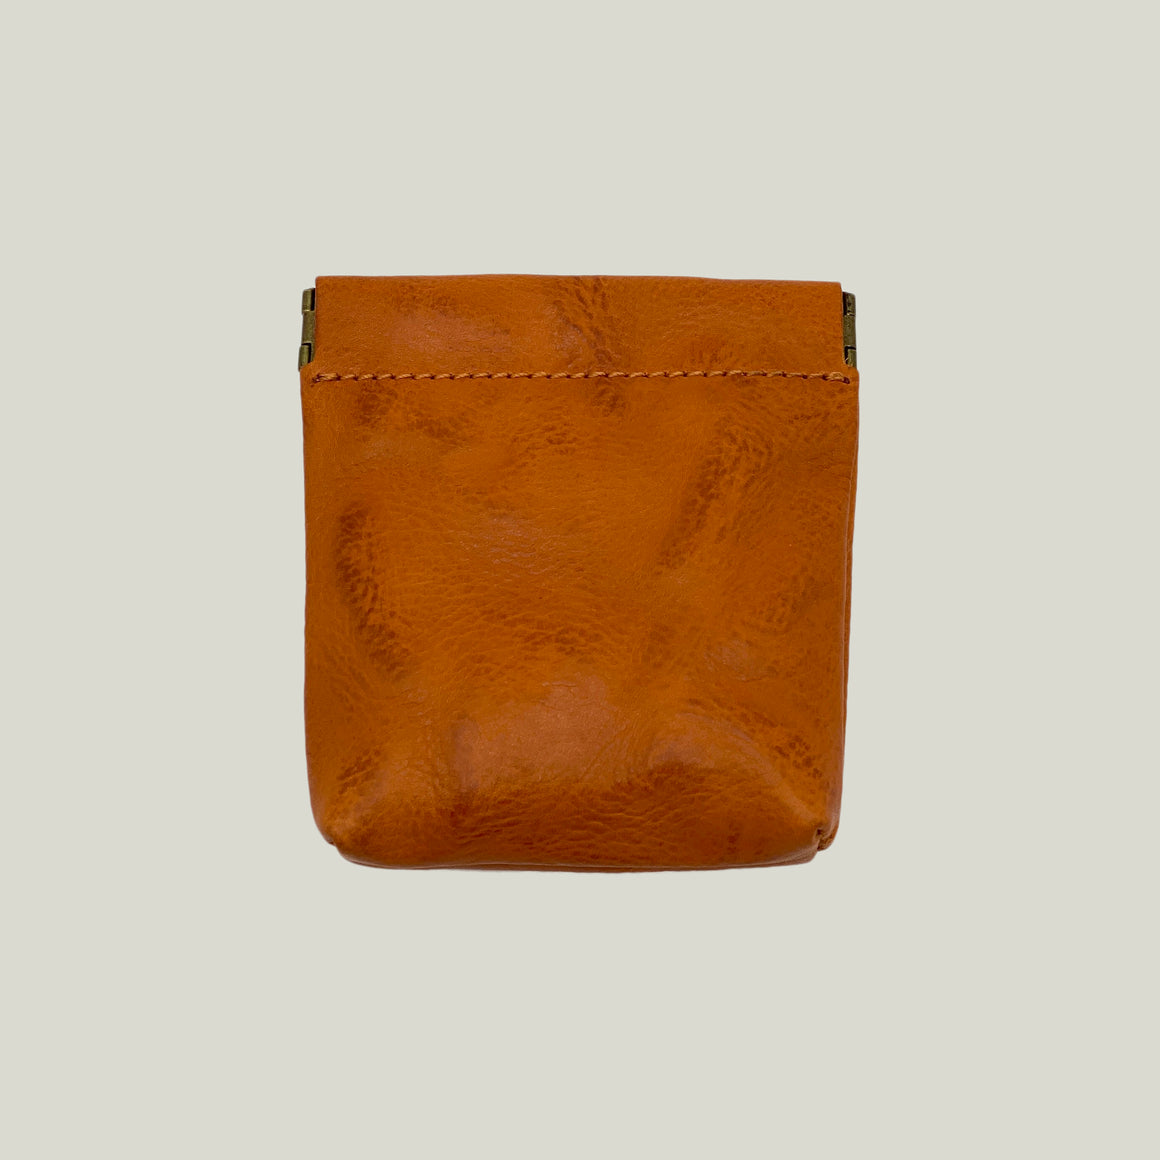 Coin Pouch Snap Top Leather